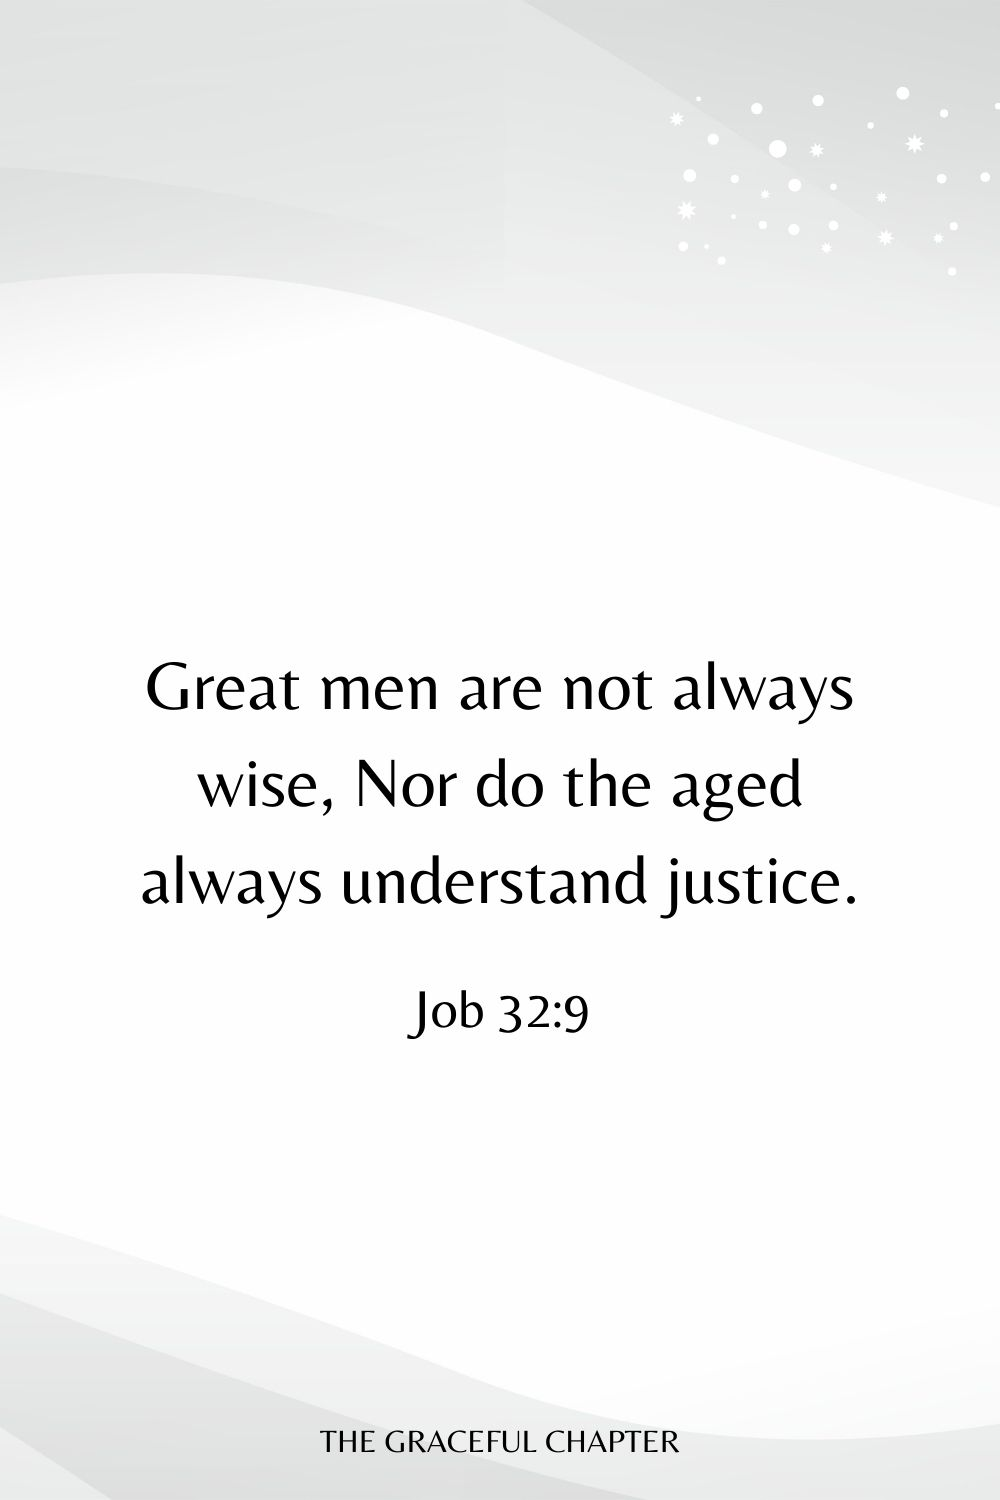 Great men are not always wise, Nor do the aged always understand justice. Job 32:9